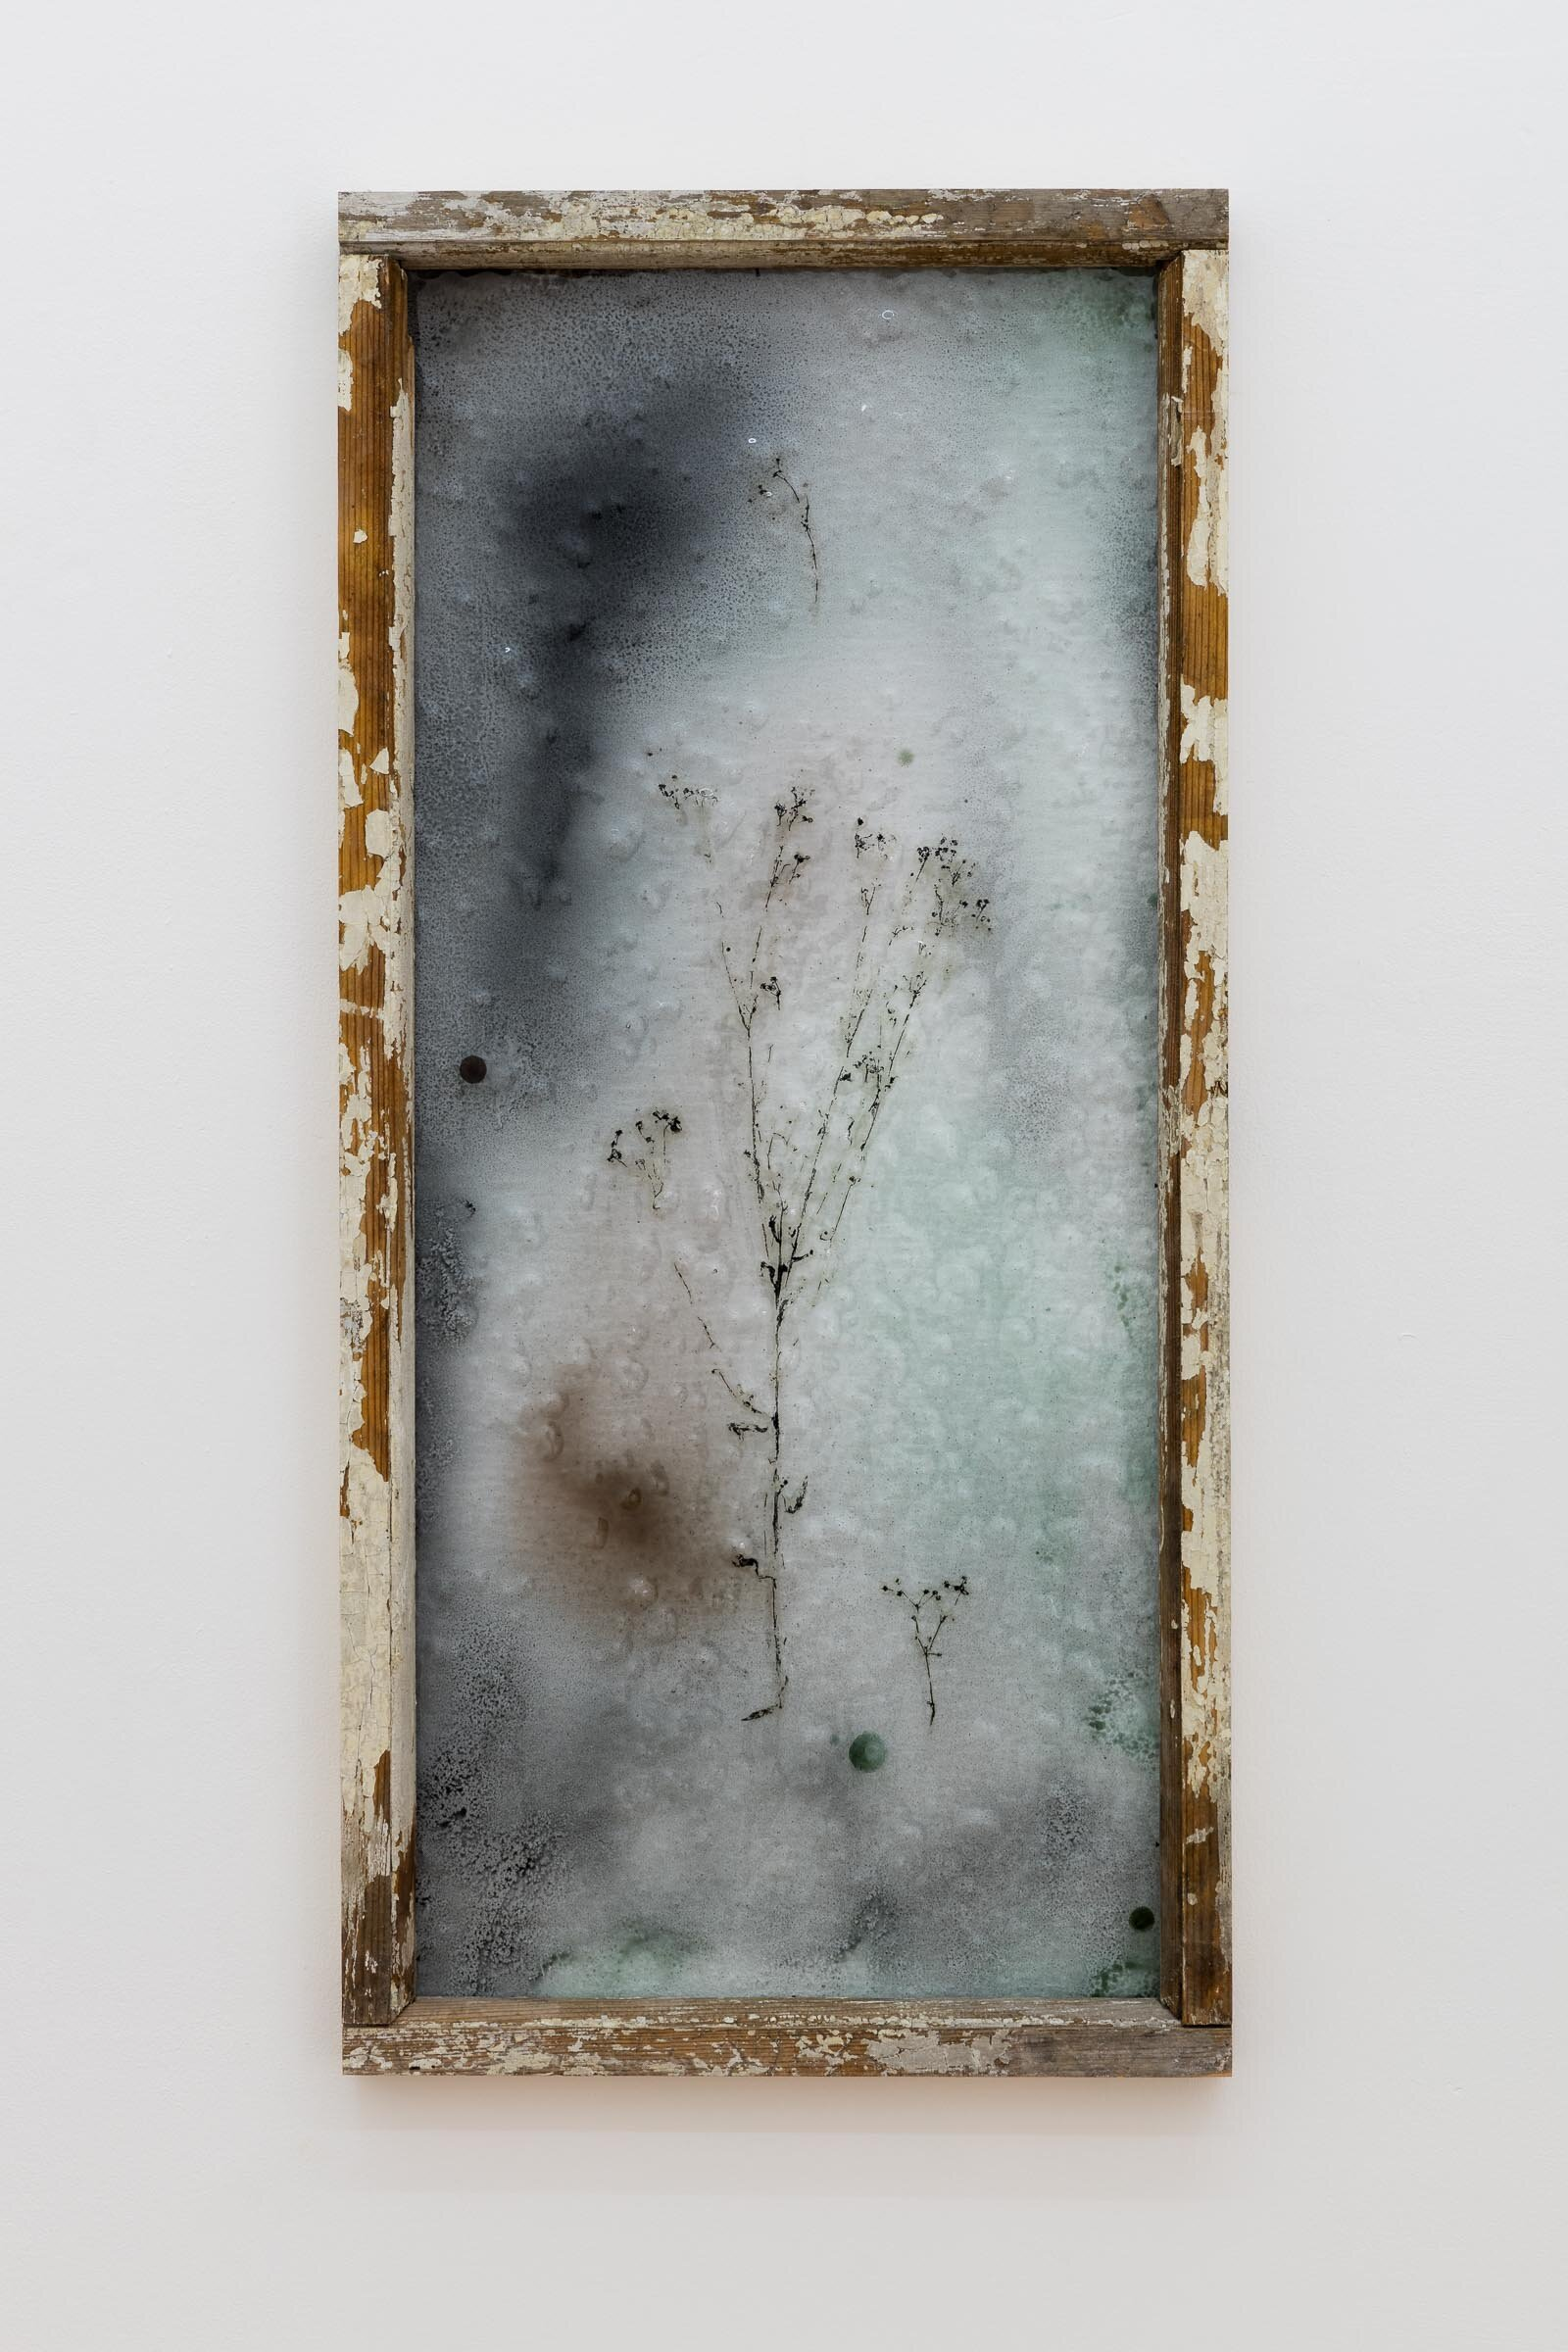 Augustas Serapinas, Notes from Užupis 2, 2019, reclaimed wood, stained glass, 98 x 46 cm